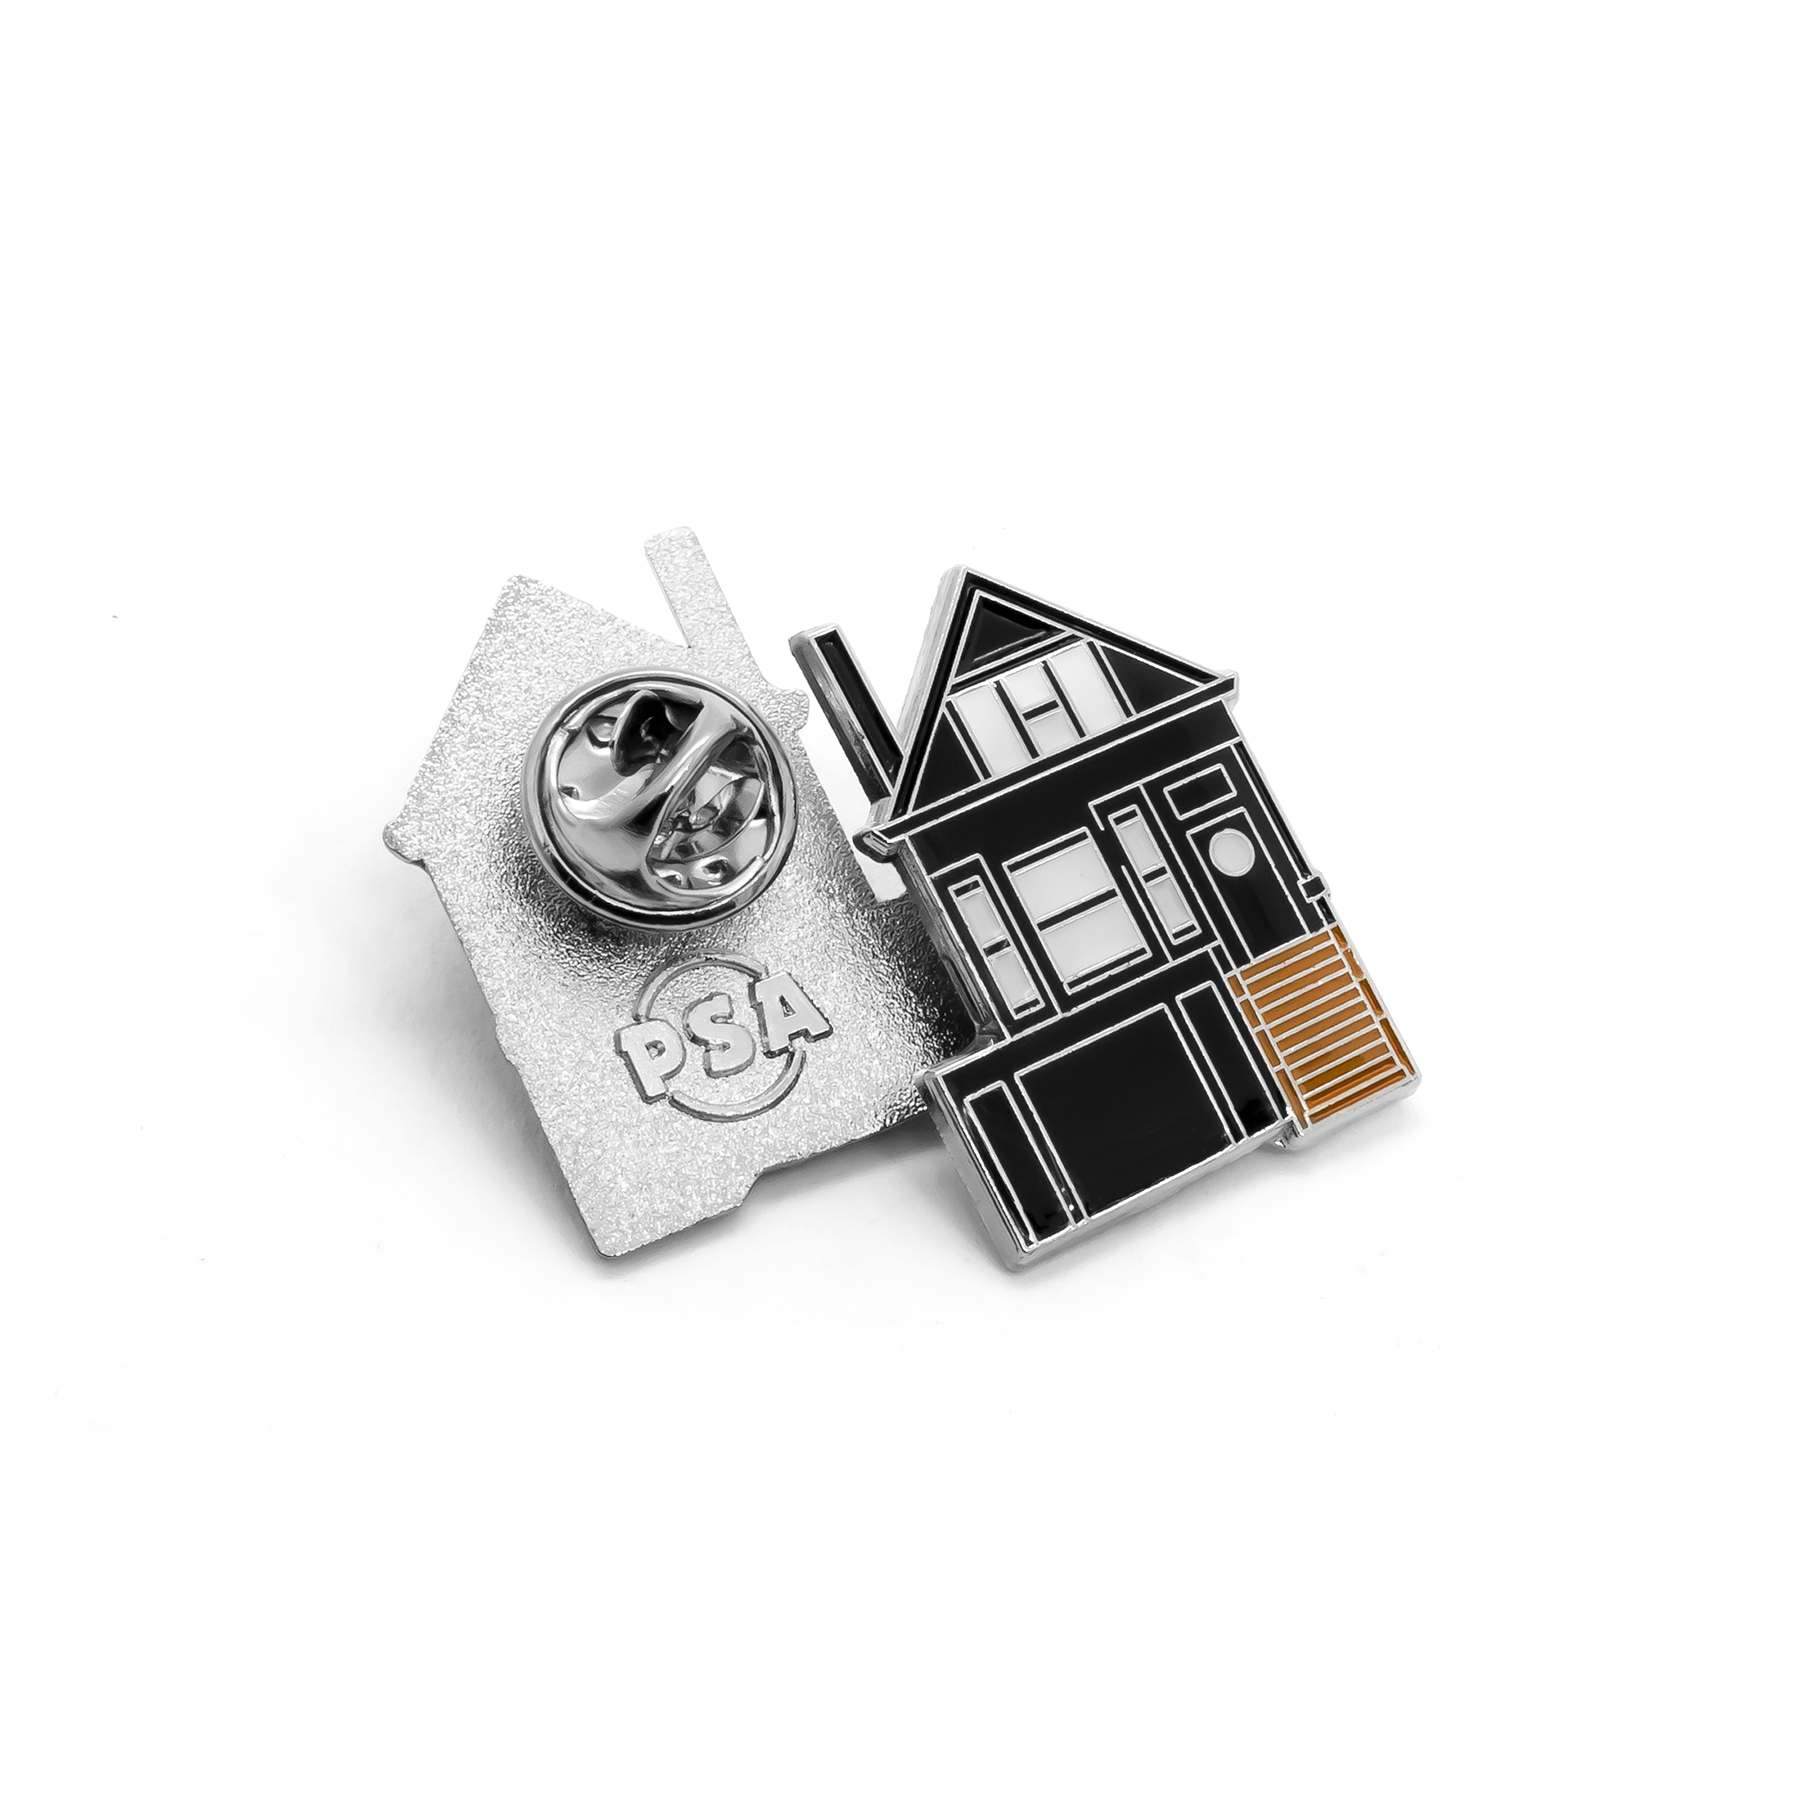 The Black House enamel pin